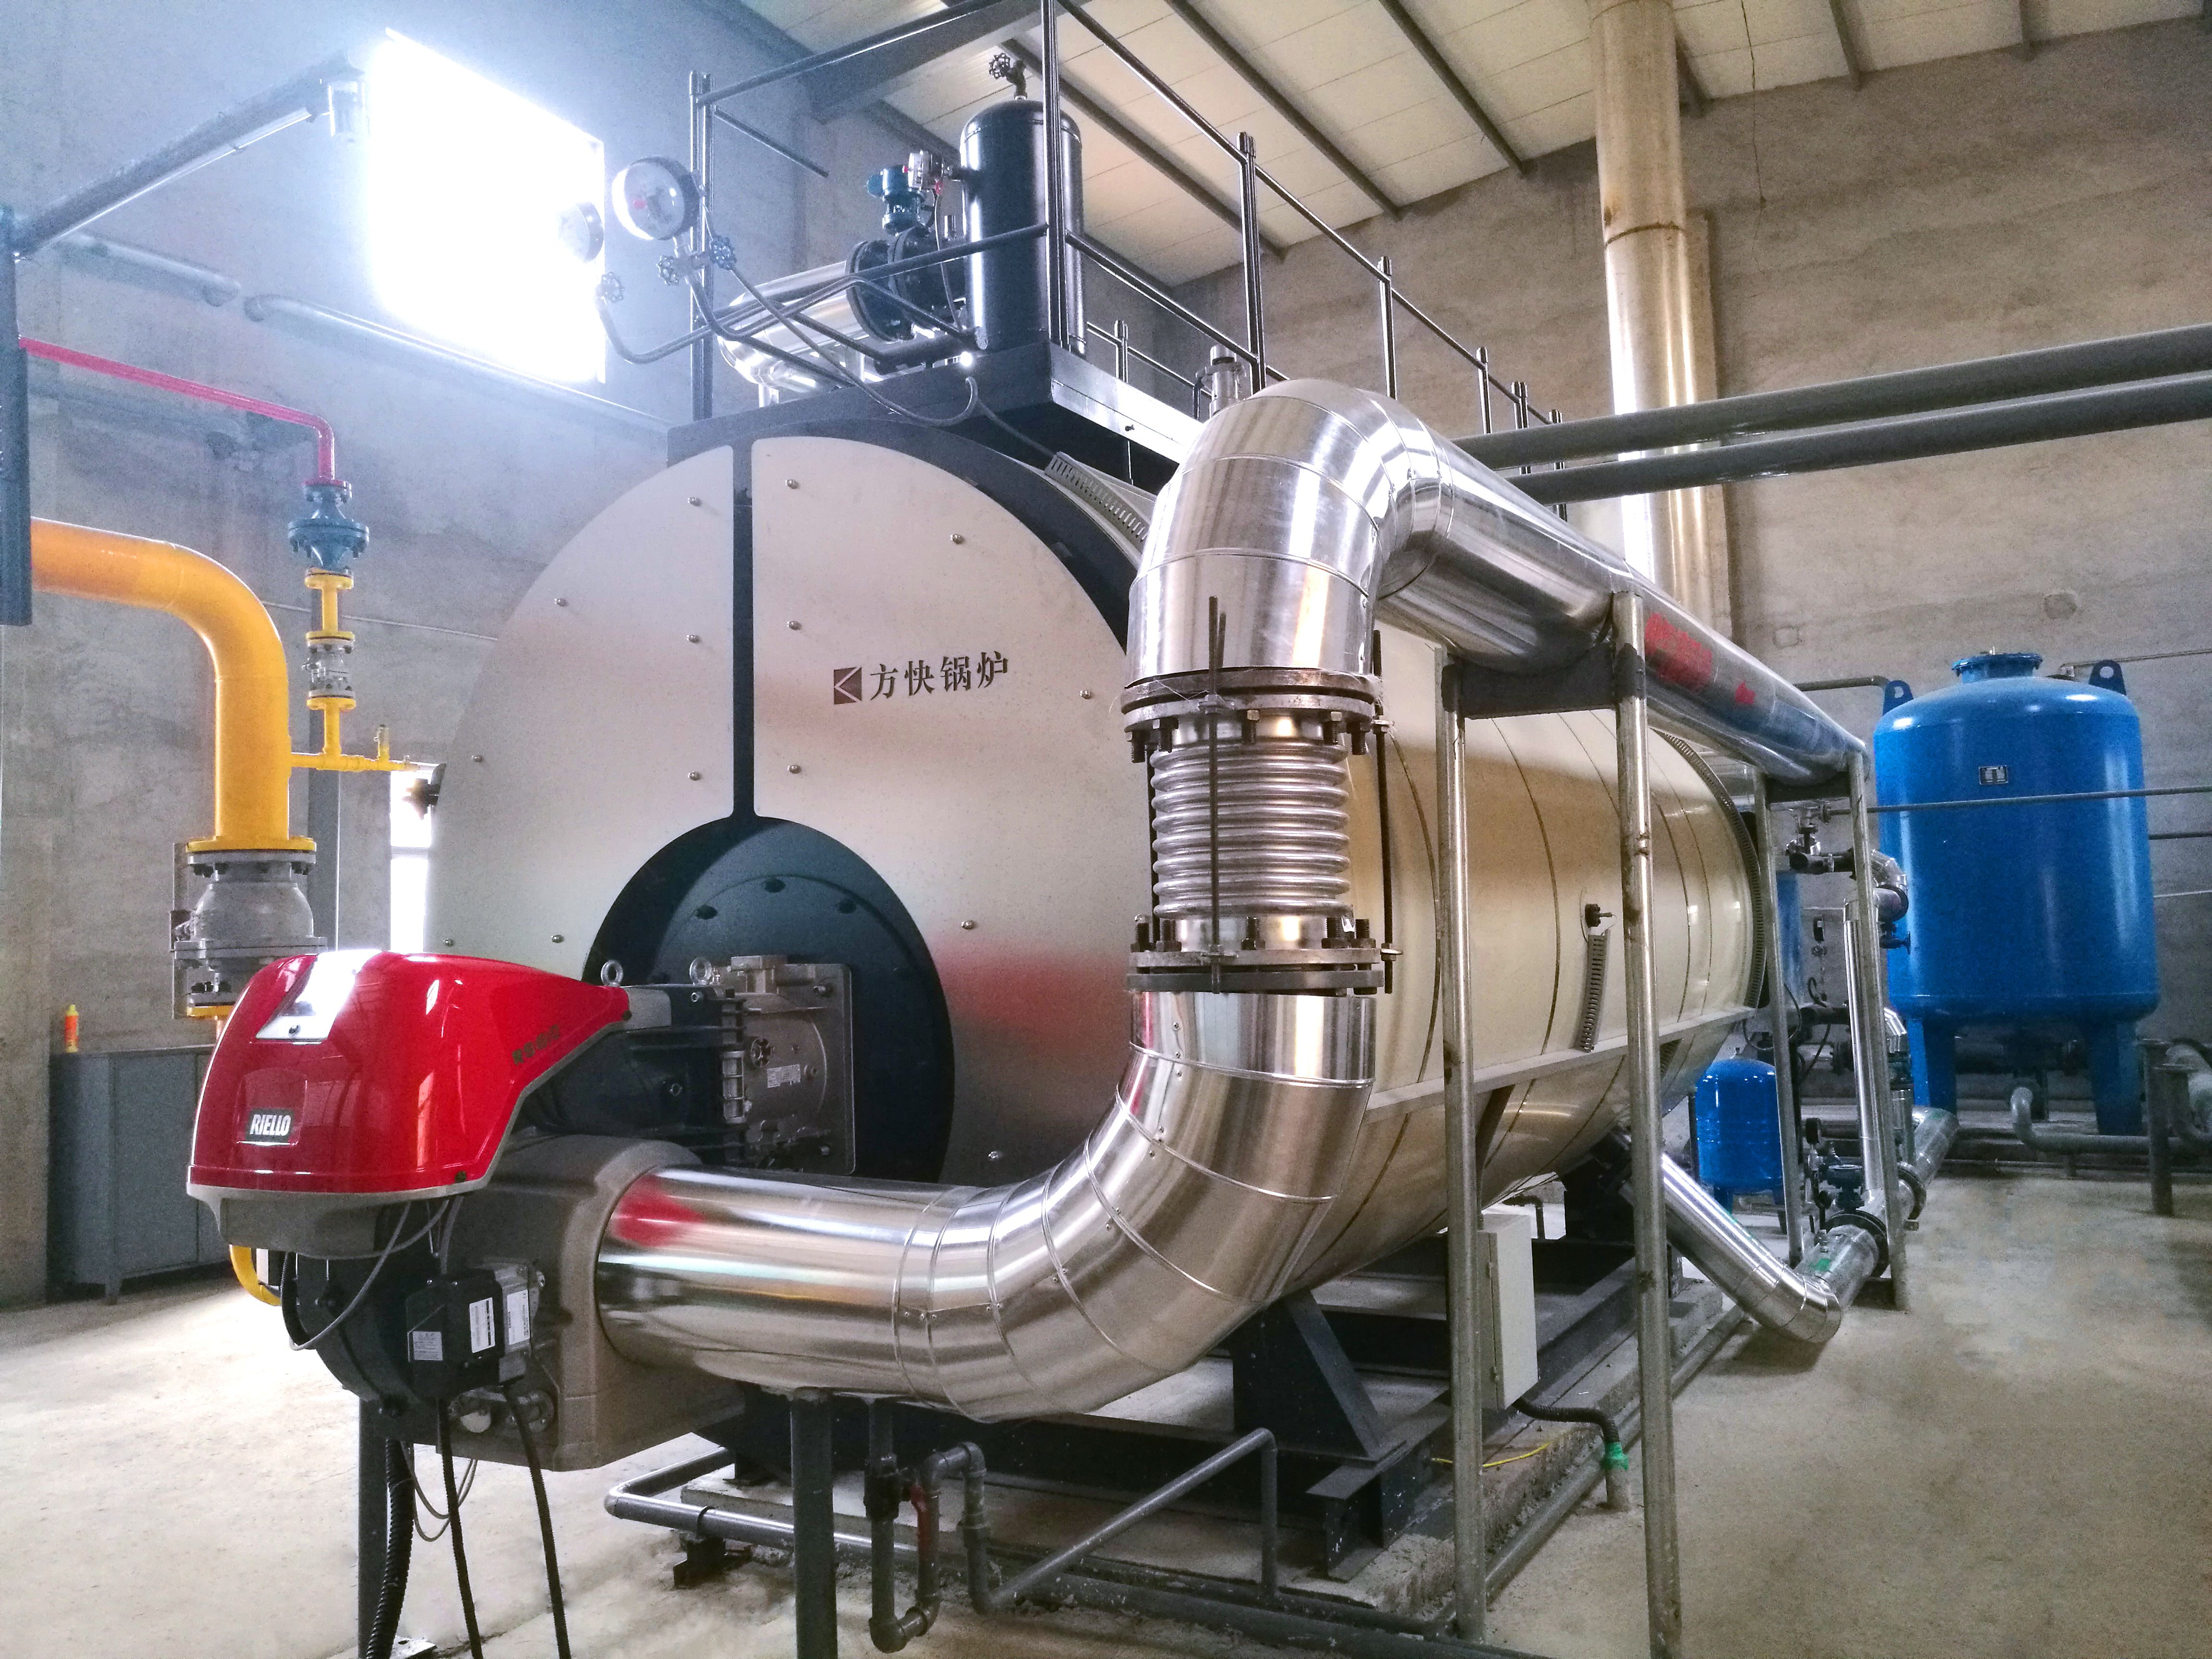 wns 1.4 MW hot water boiler factory in 2020 Steam boiler